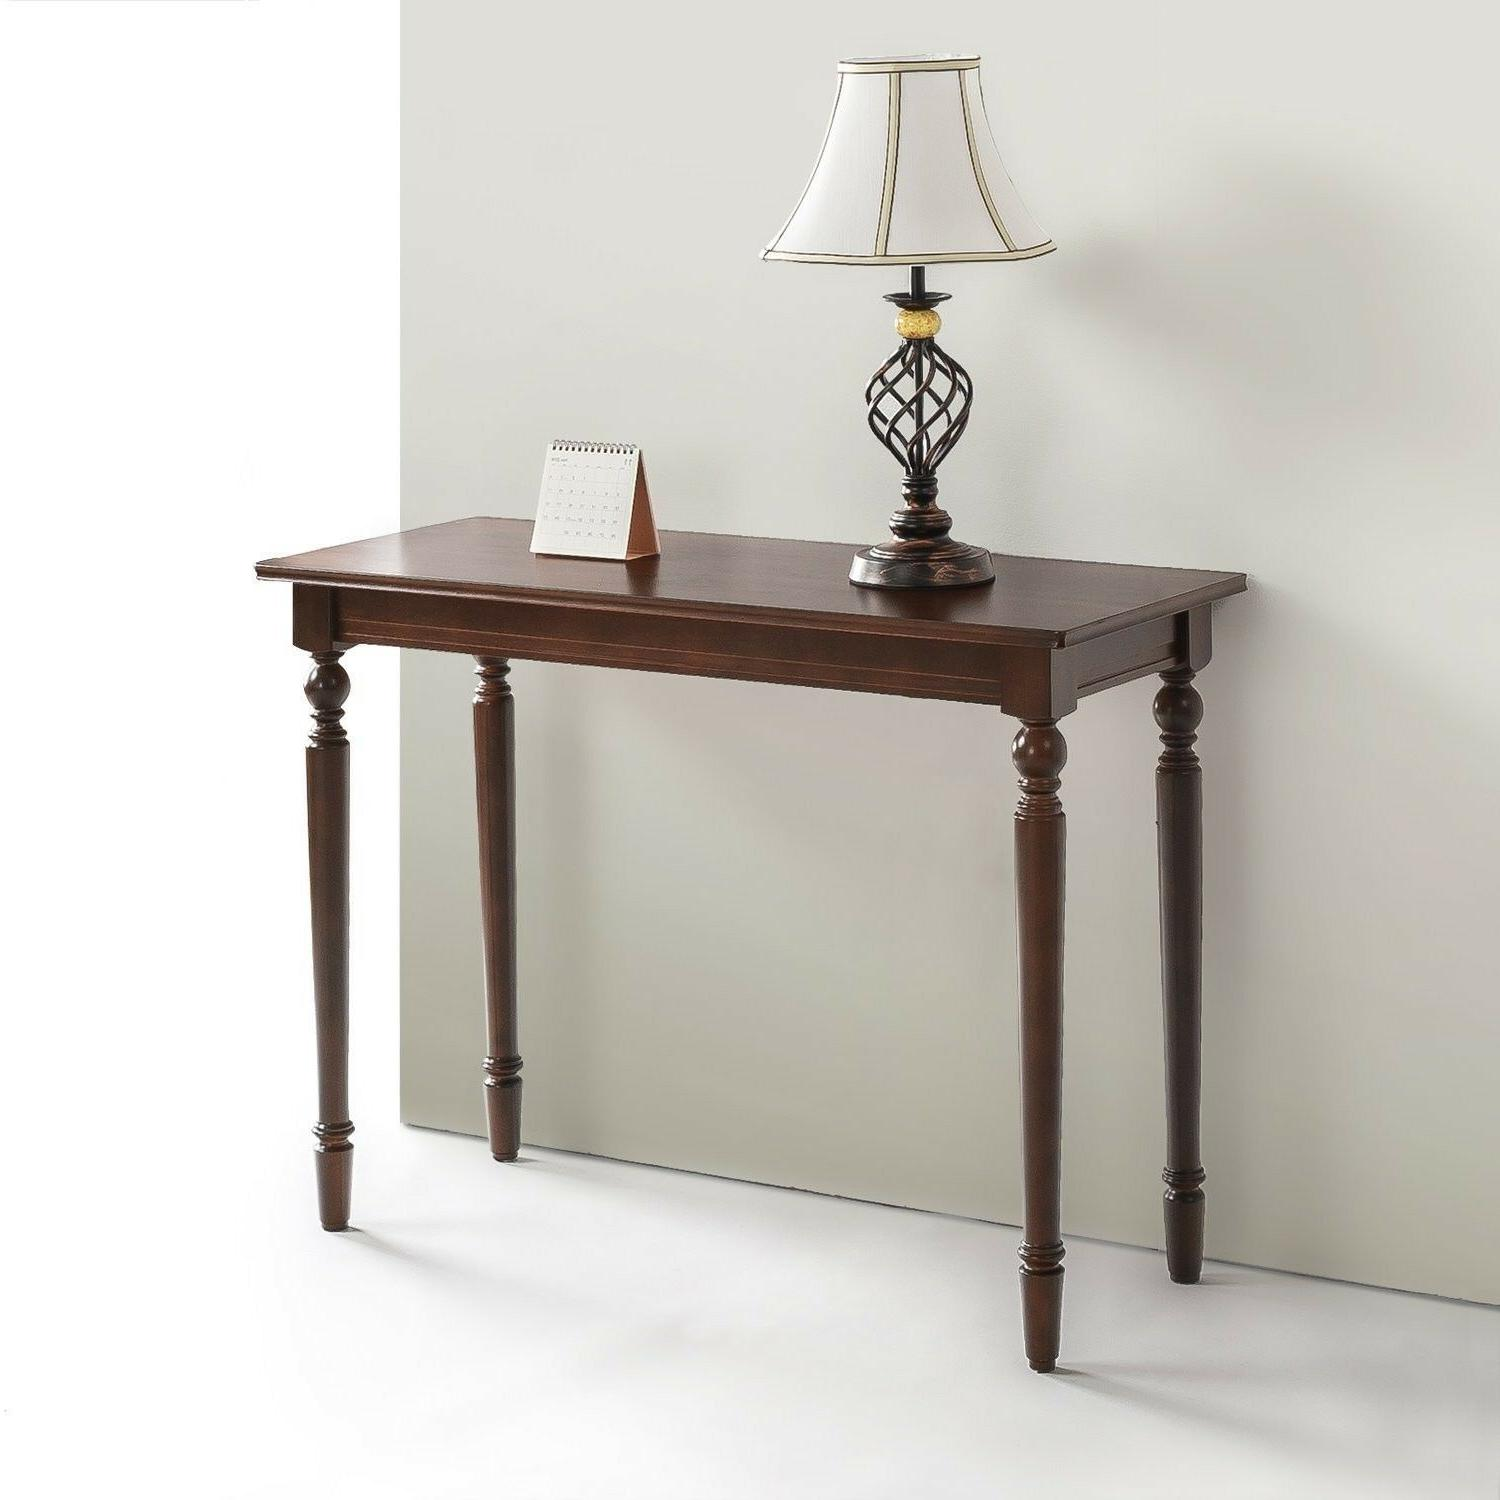 Bordeaux Wood Console Table / Entryway / Table,Perfect Decor